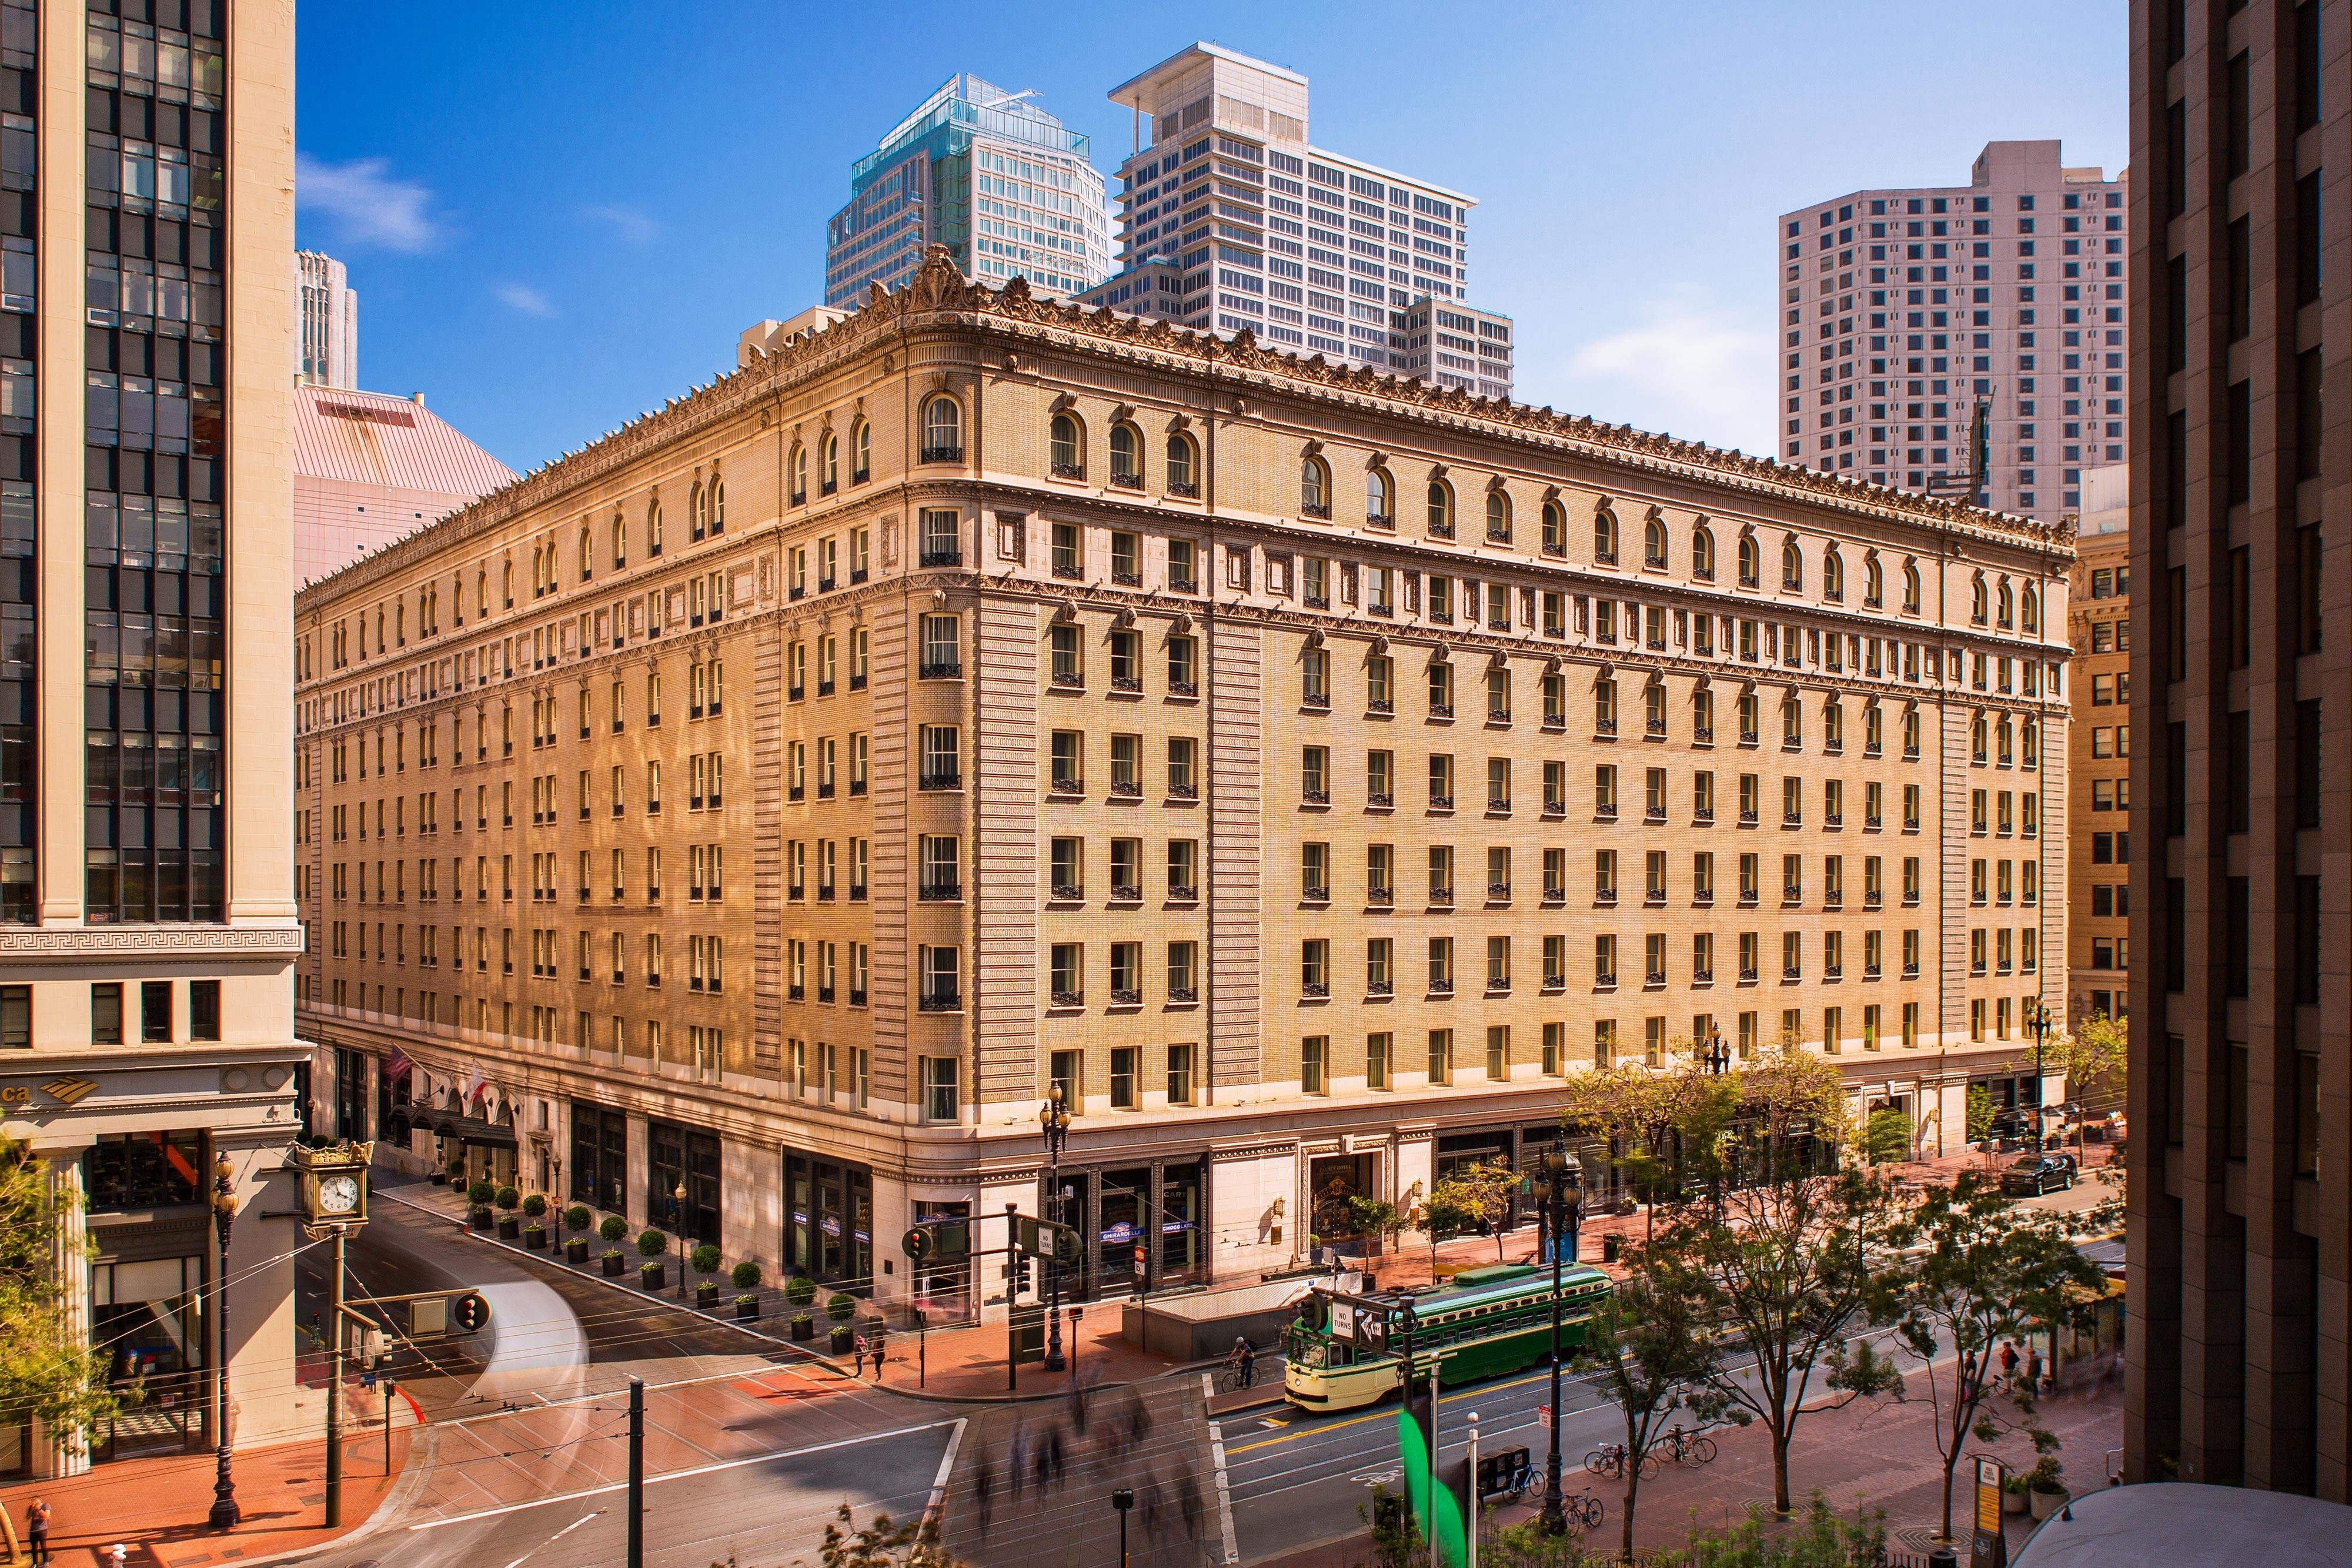 Palace Hotel A Luxury Collection Hotel Deluxe San Francisco Ca Hotels Gds Reservation Codes Travel Weekly